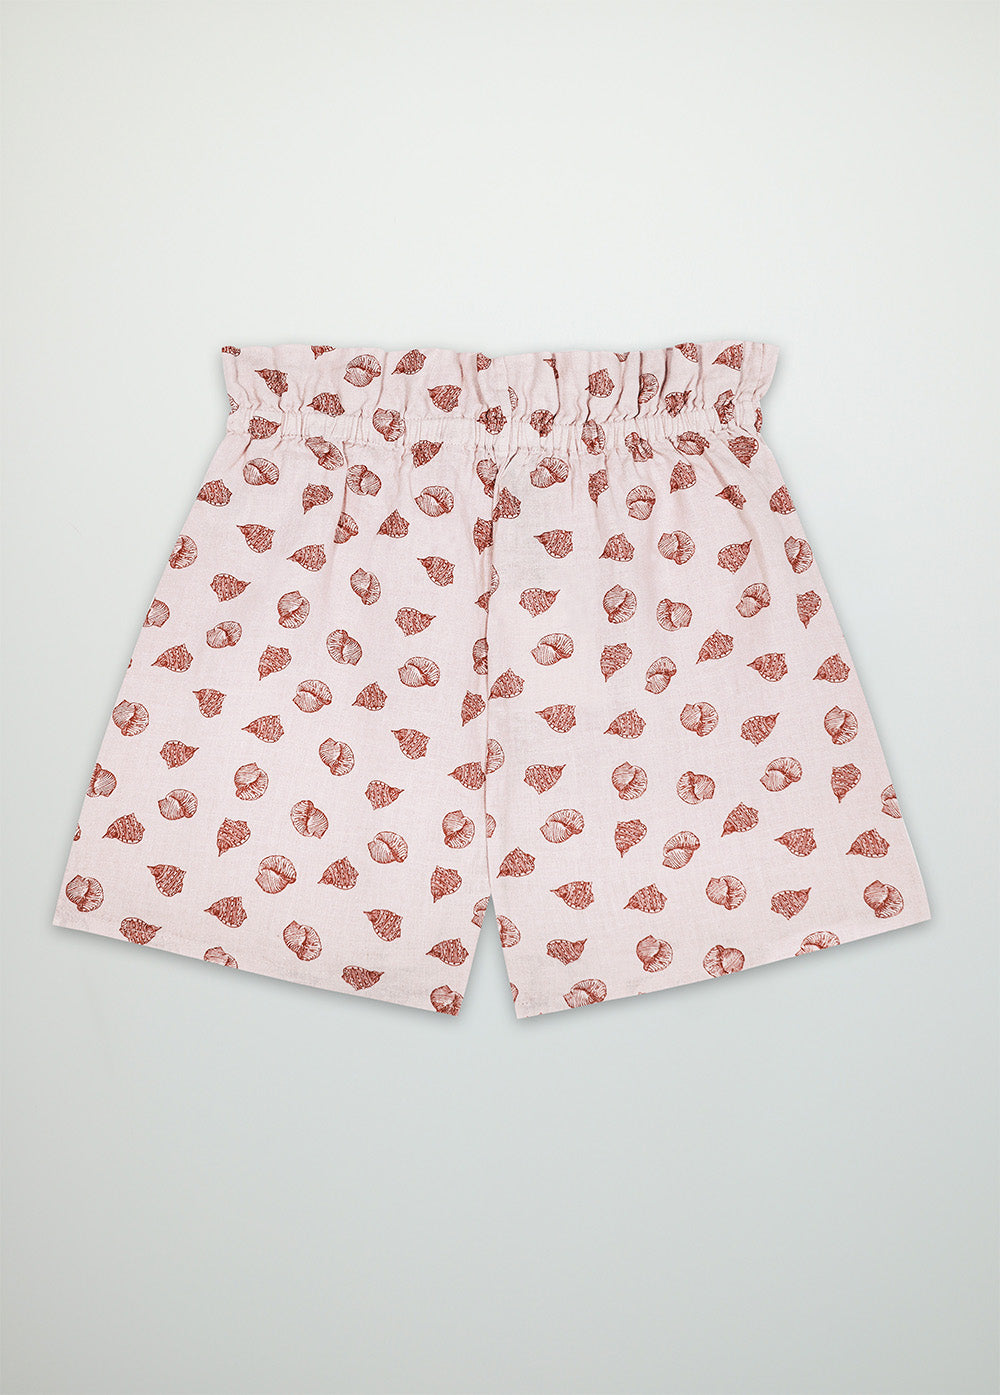 Carola woman short